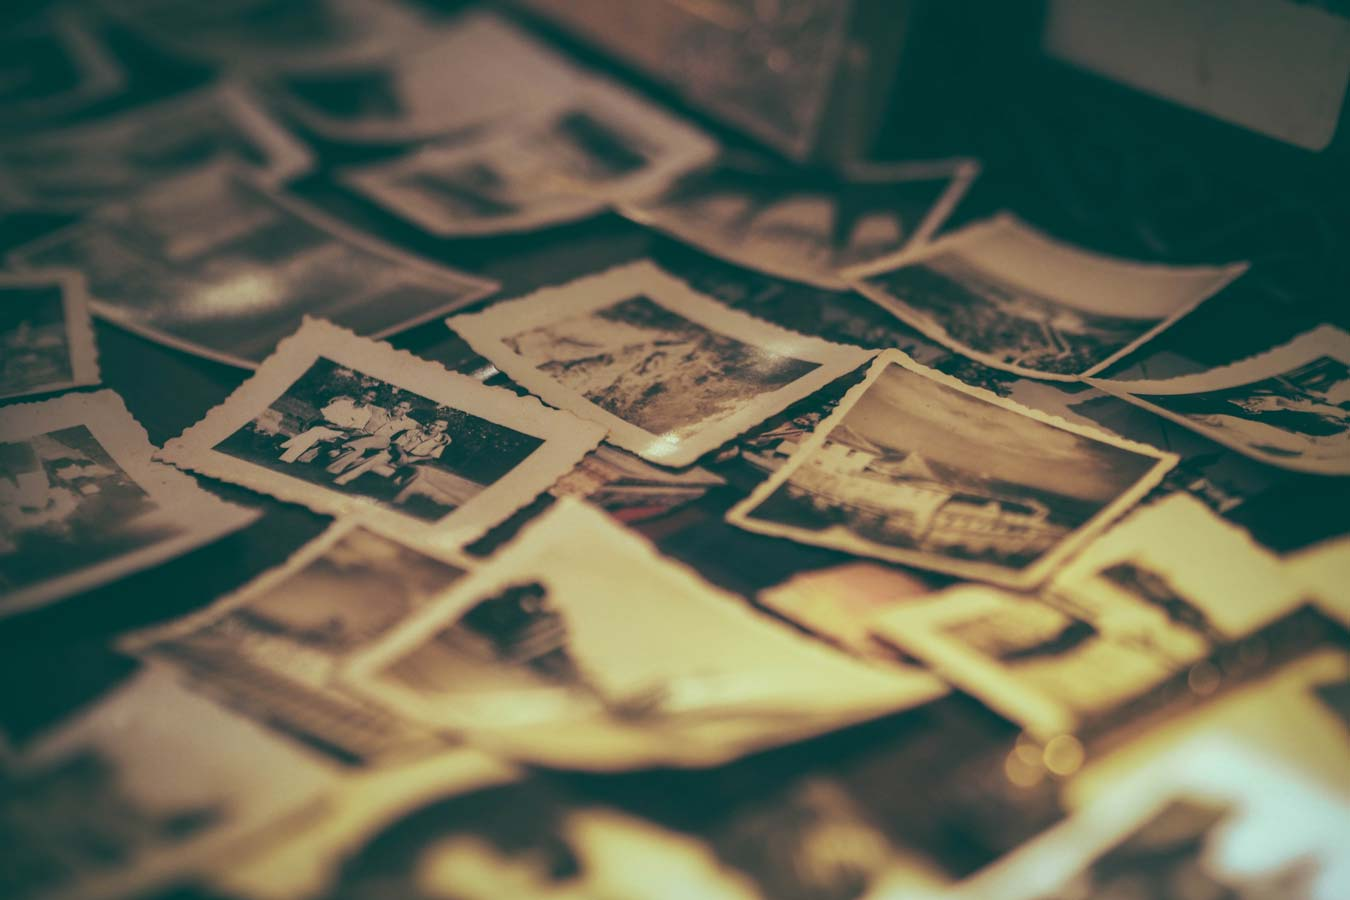 Memories come as story pieces